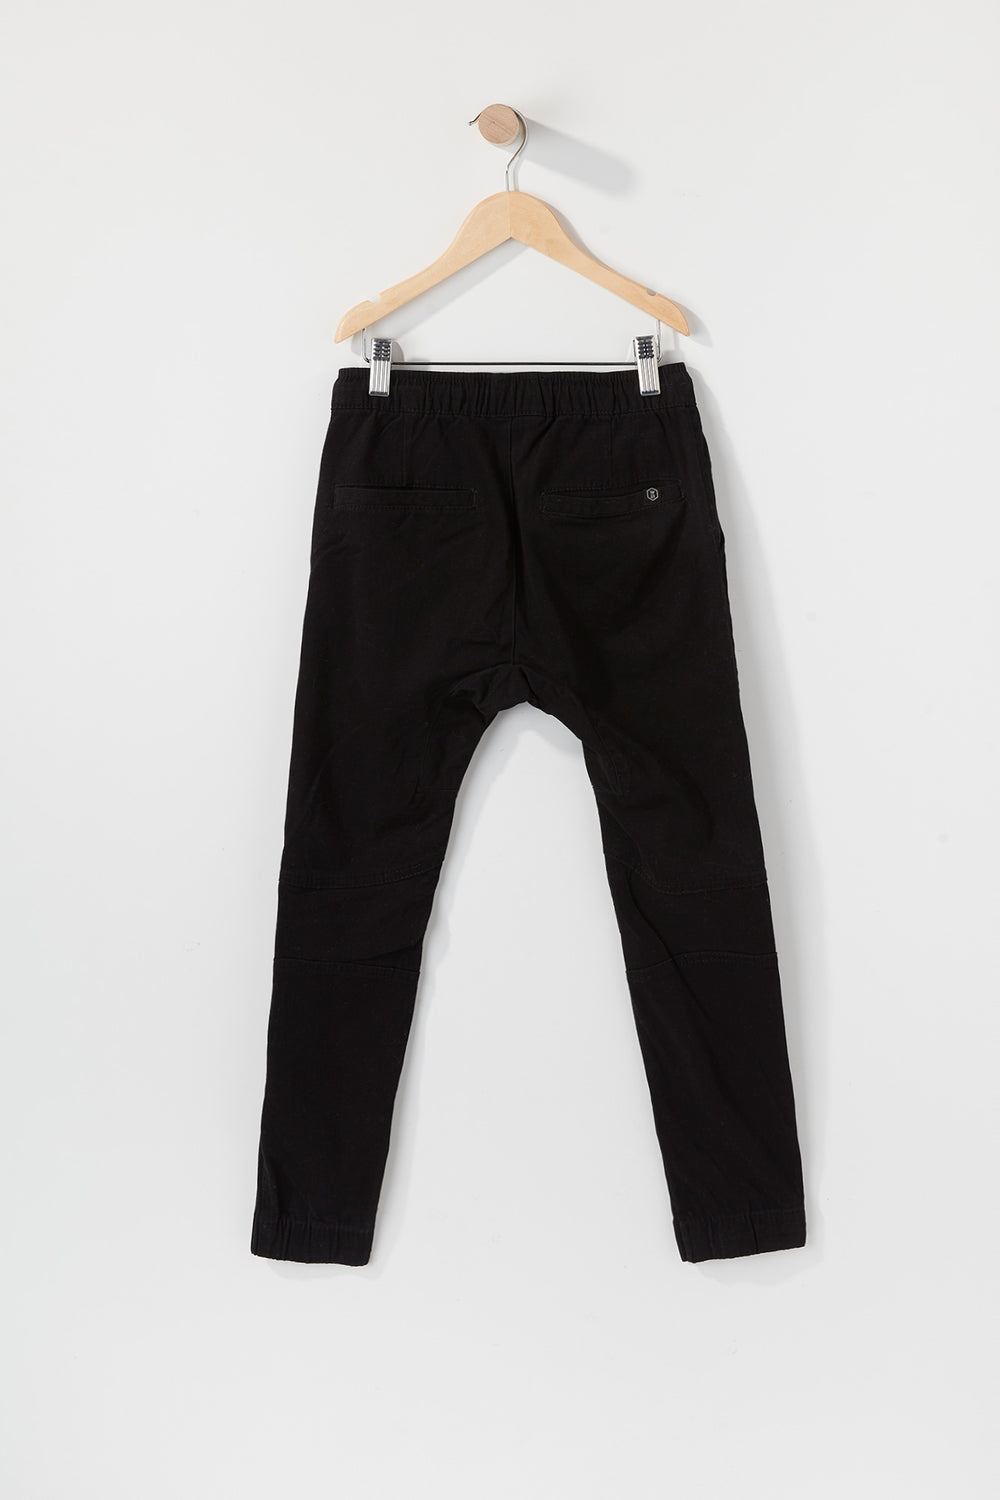 West49 Boys Moto Jogger Black